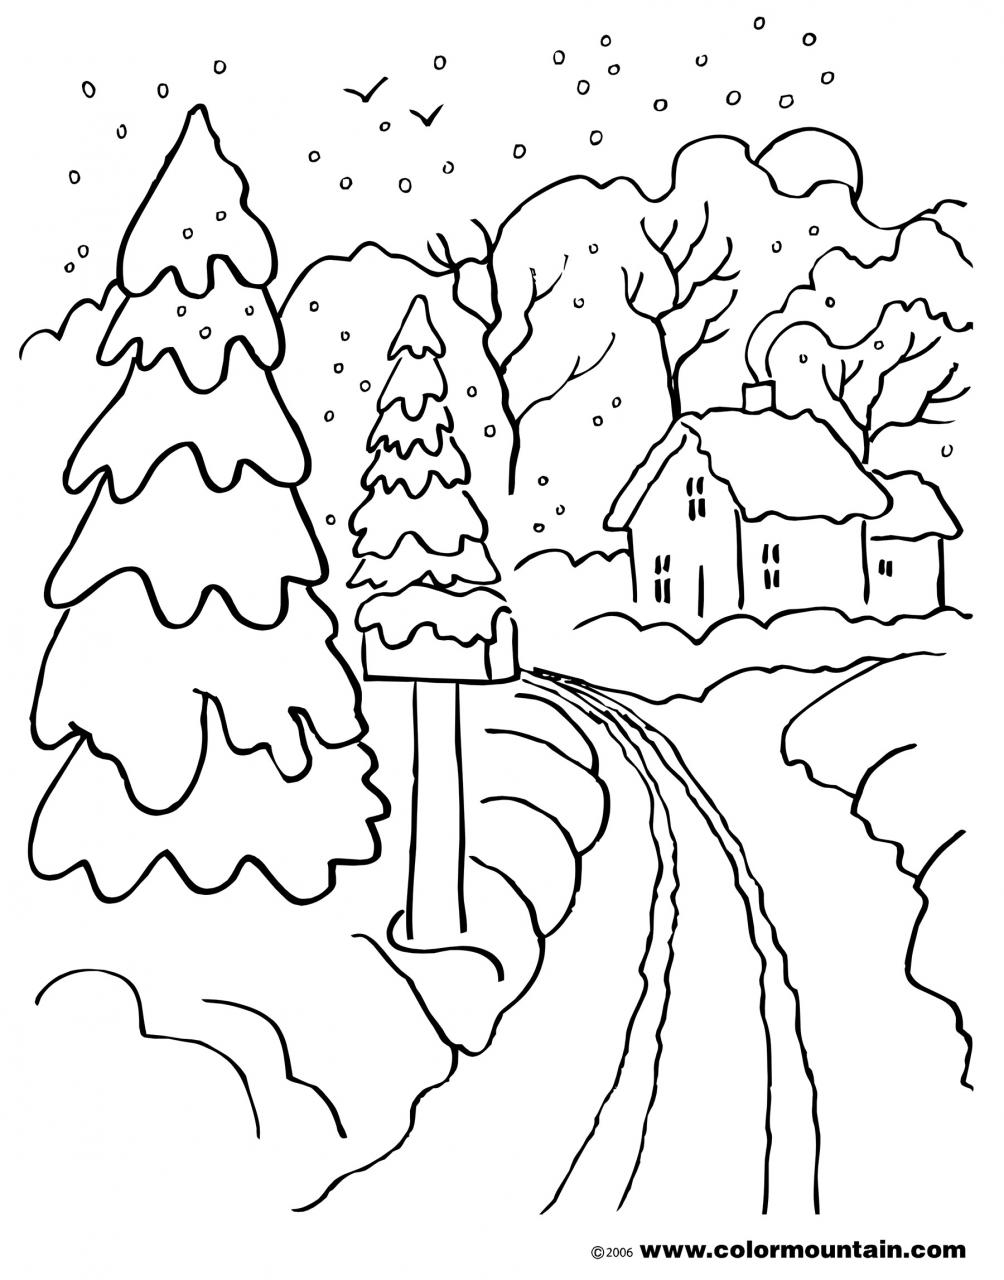 landscape coloring pages - coloring page of winter scene